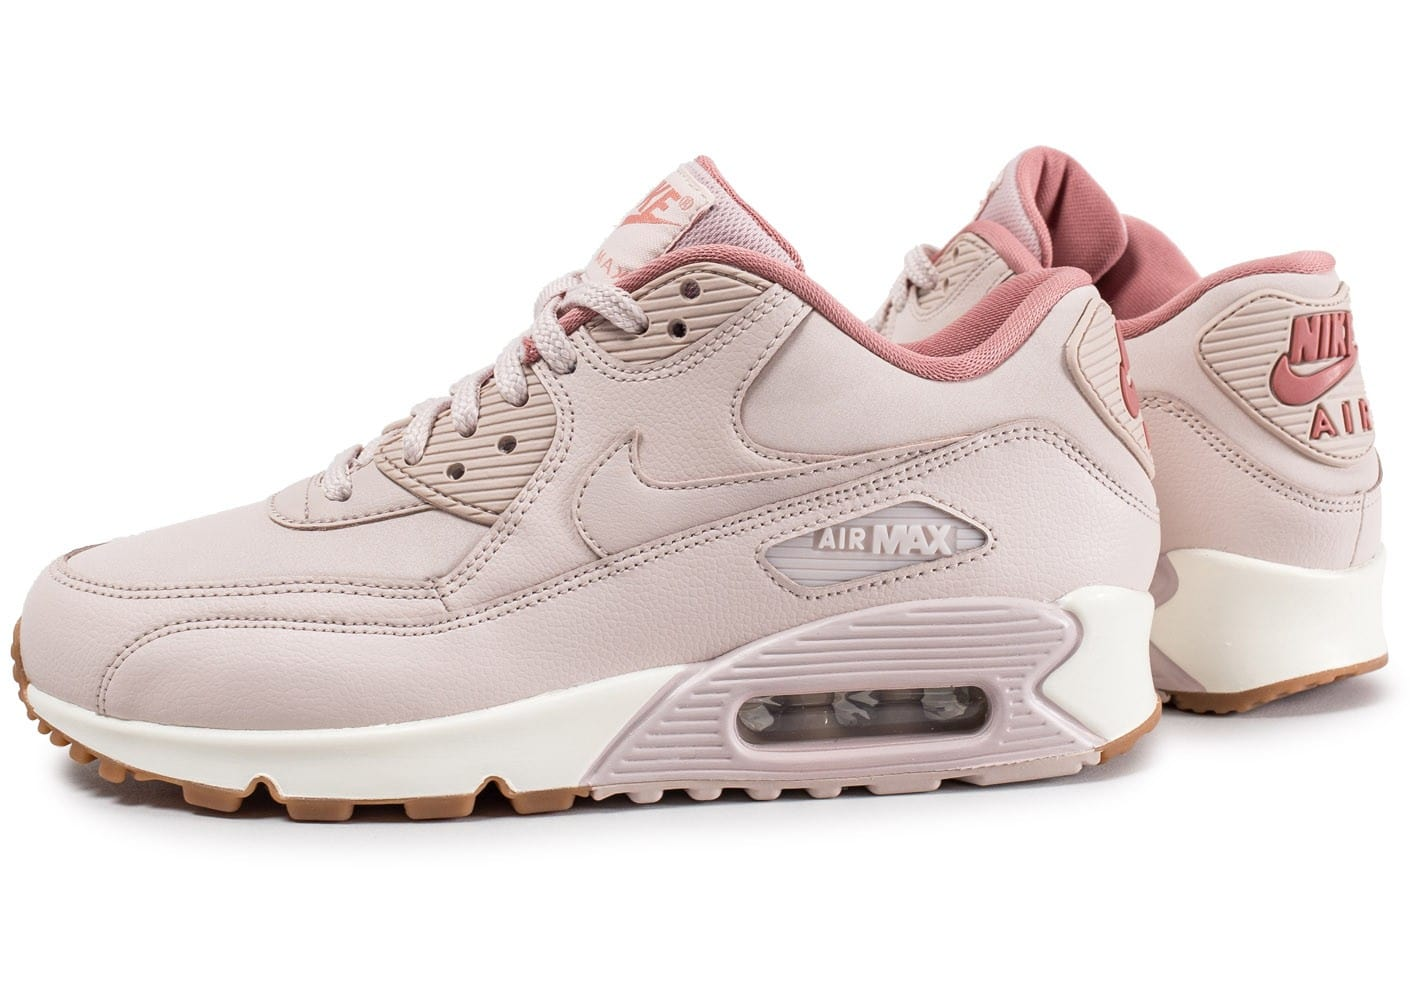 Air Jusqu Promotions Max Femme Pas R 47 Cher Nike qHF5xwn